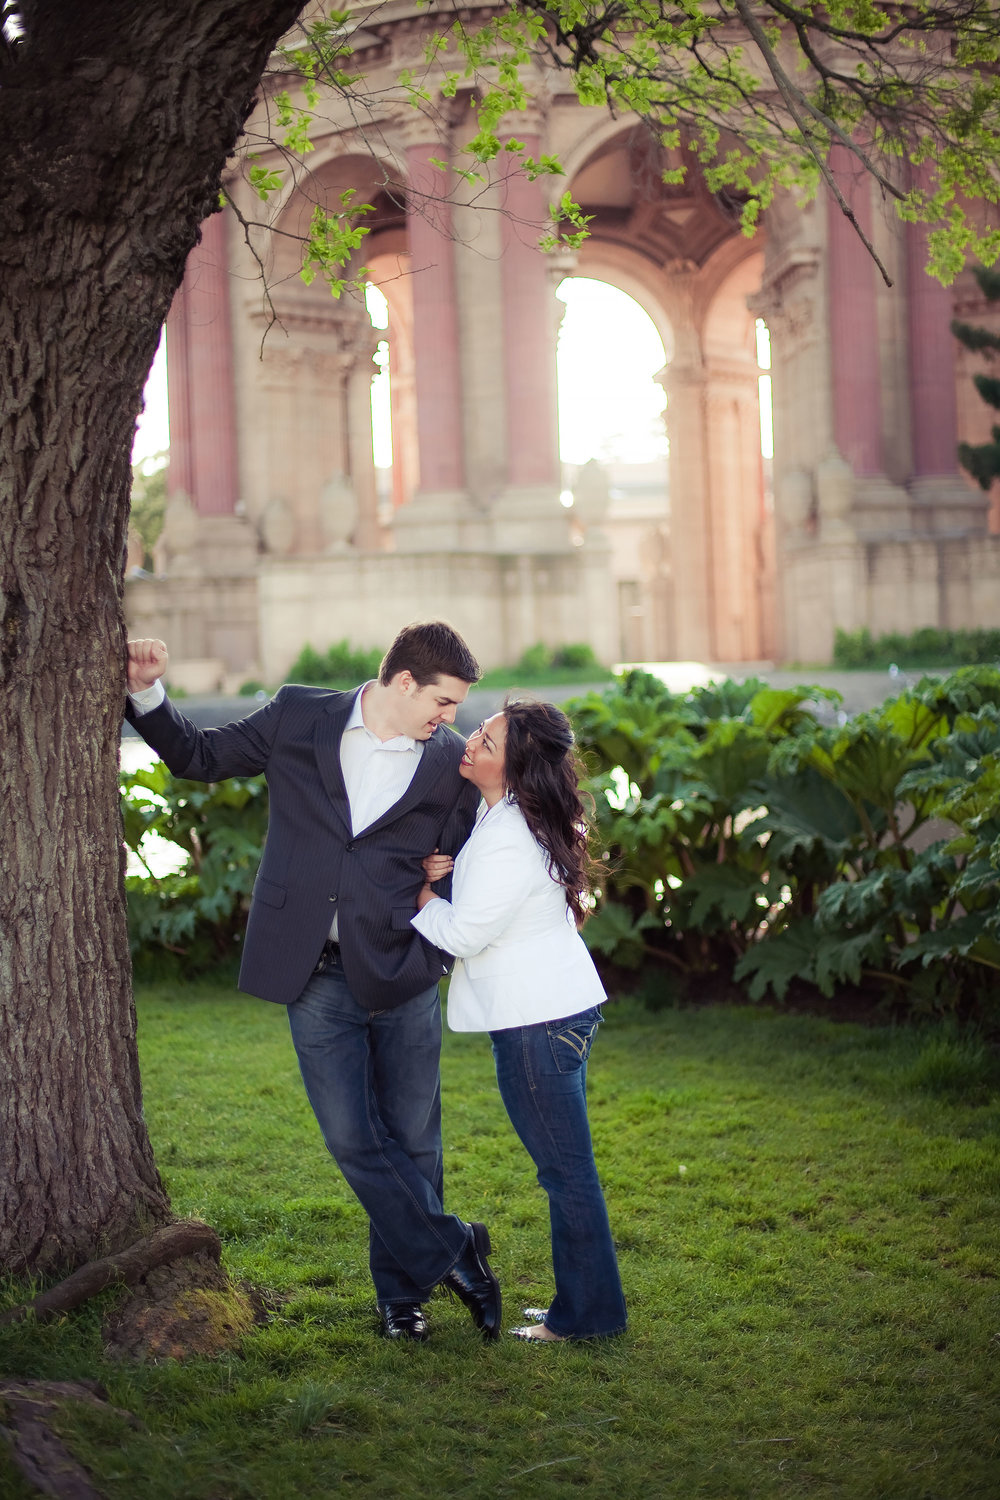 san-francisco-engagement-stephen-grant-photography-026.jpg